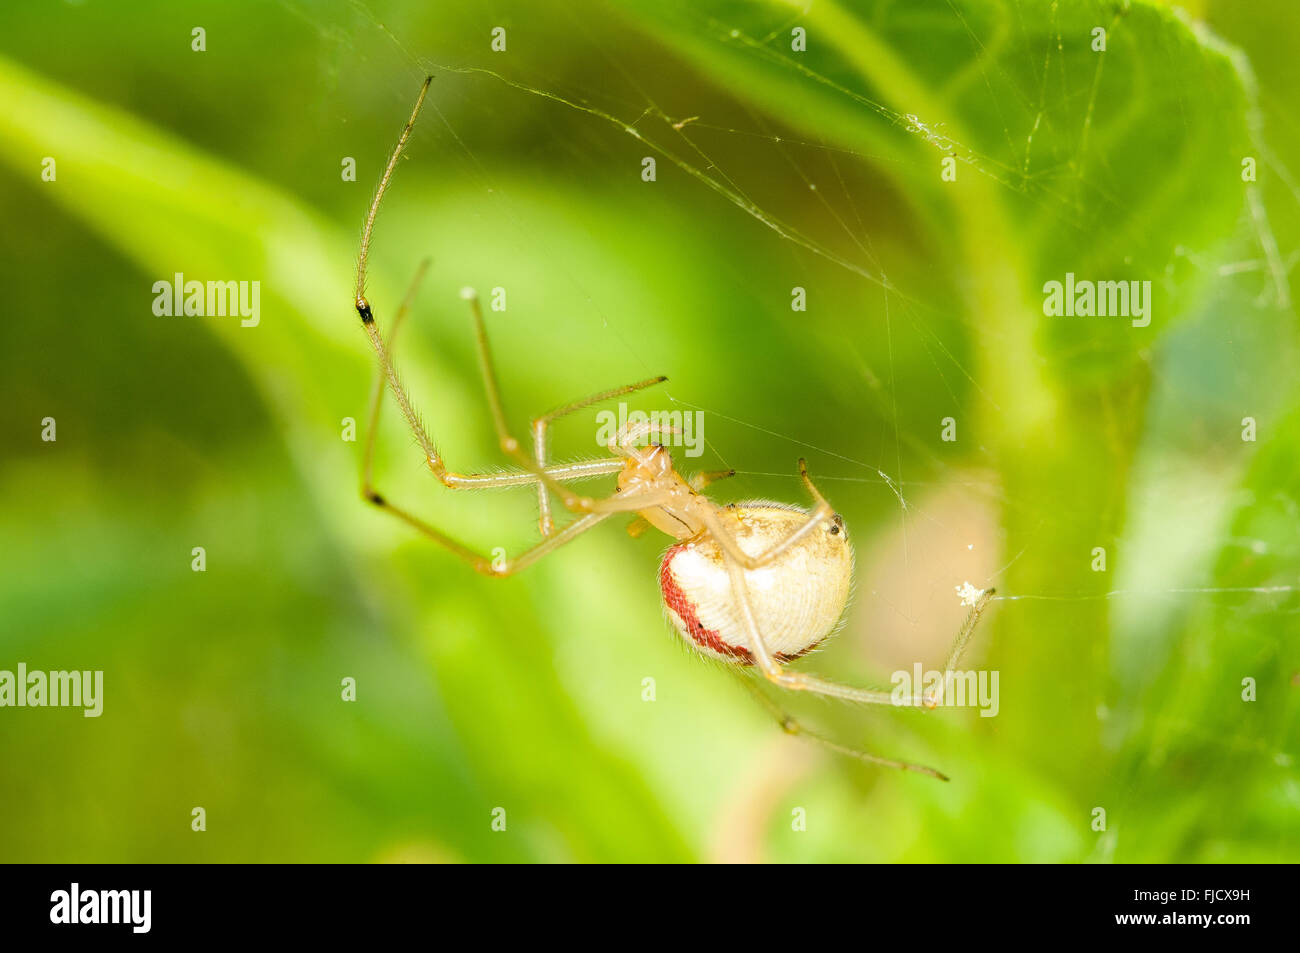 A Candy Stripe Spider (Enoplognatha ovata) sits in its web. Washington, United States. - Stock Image